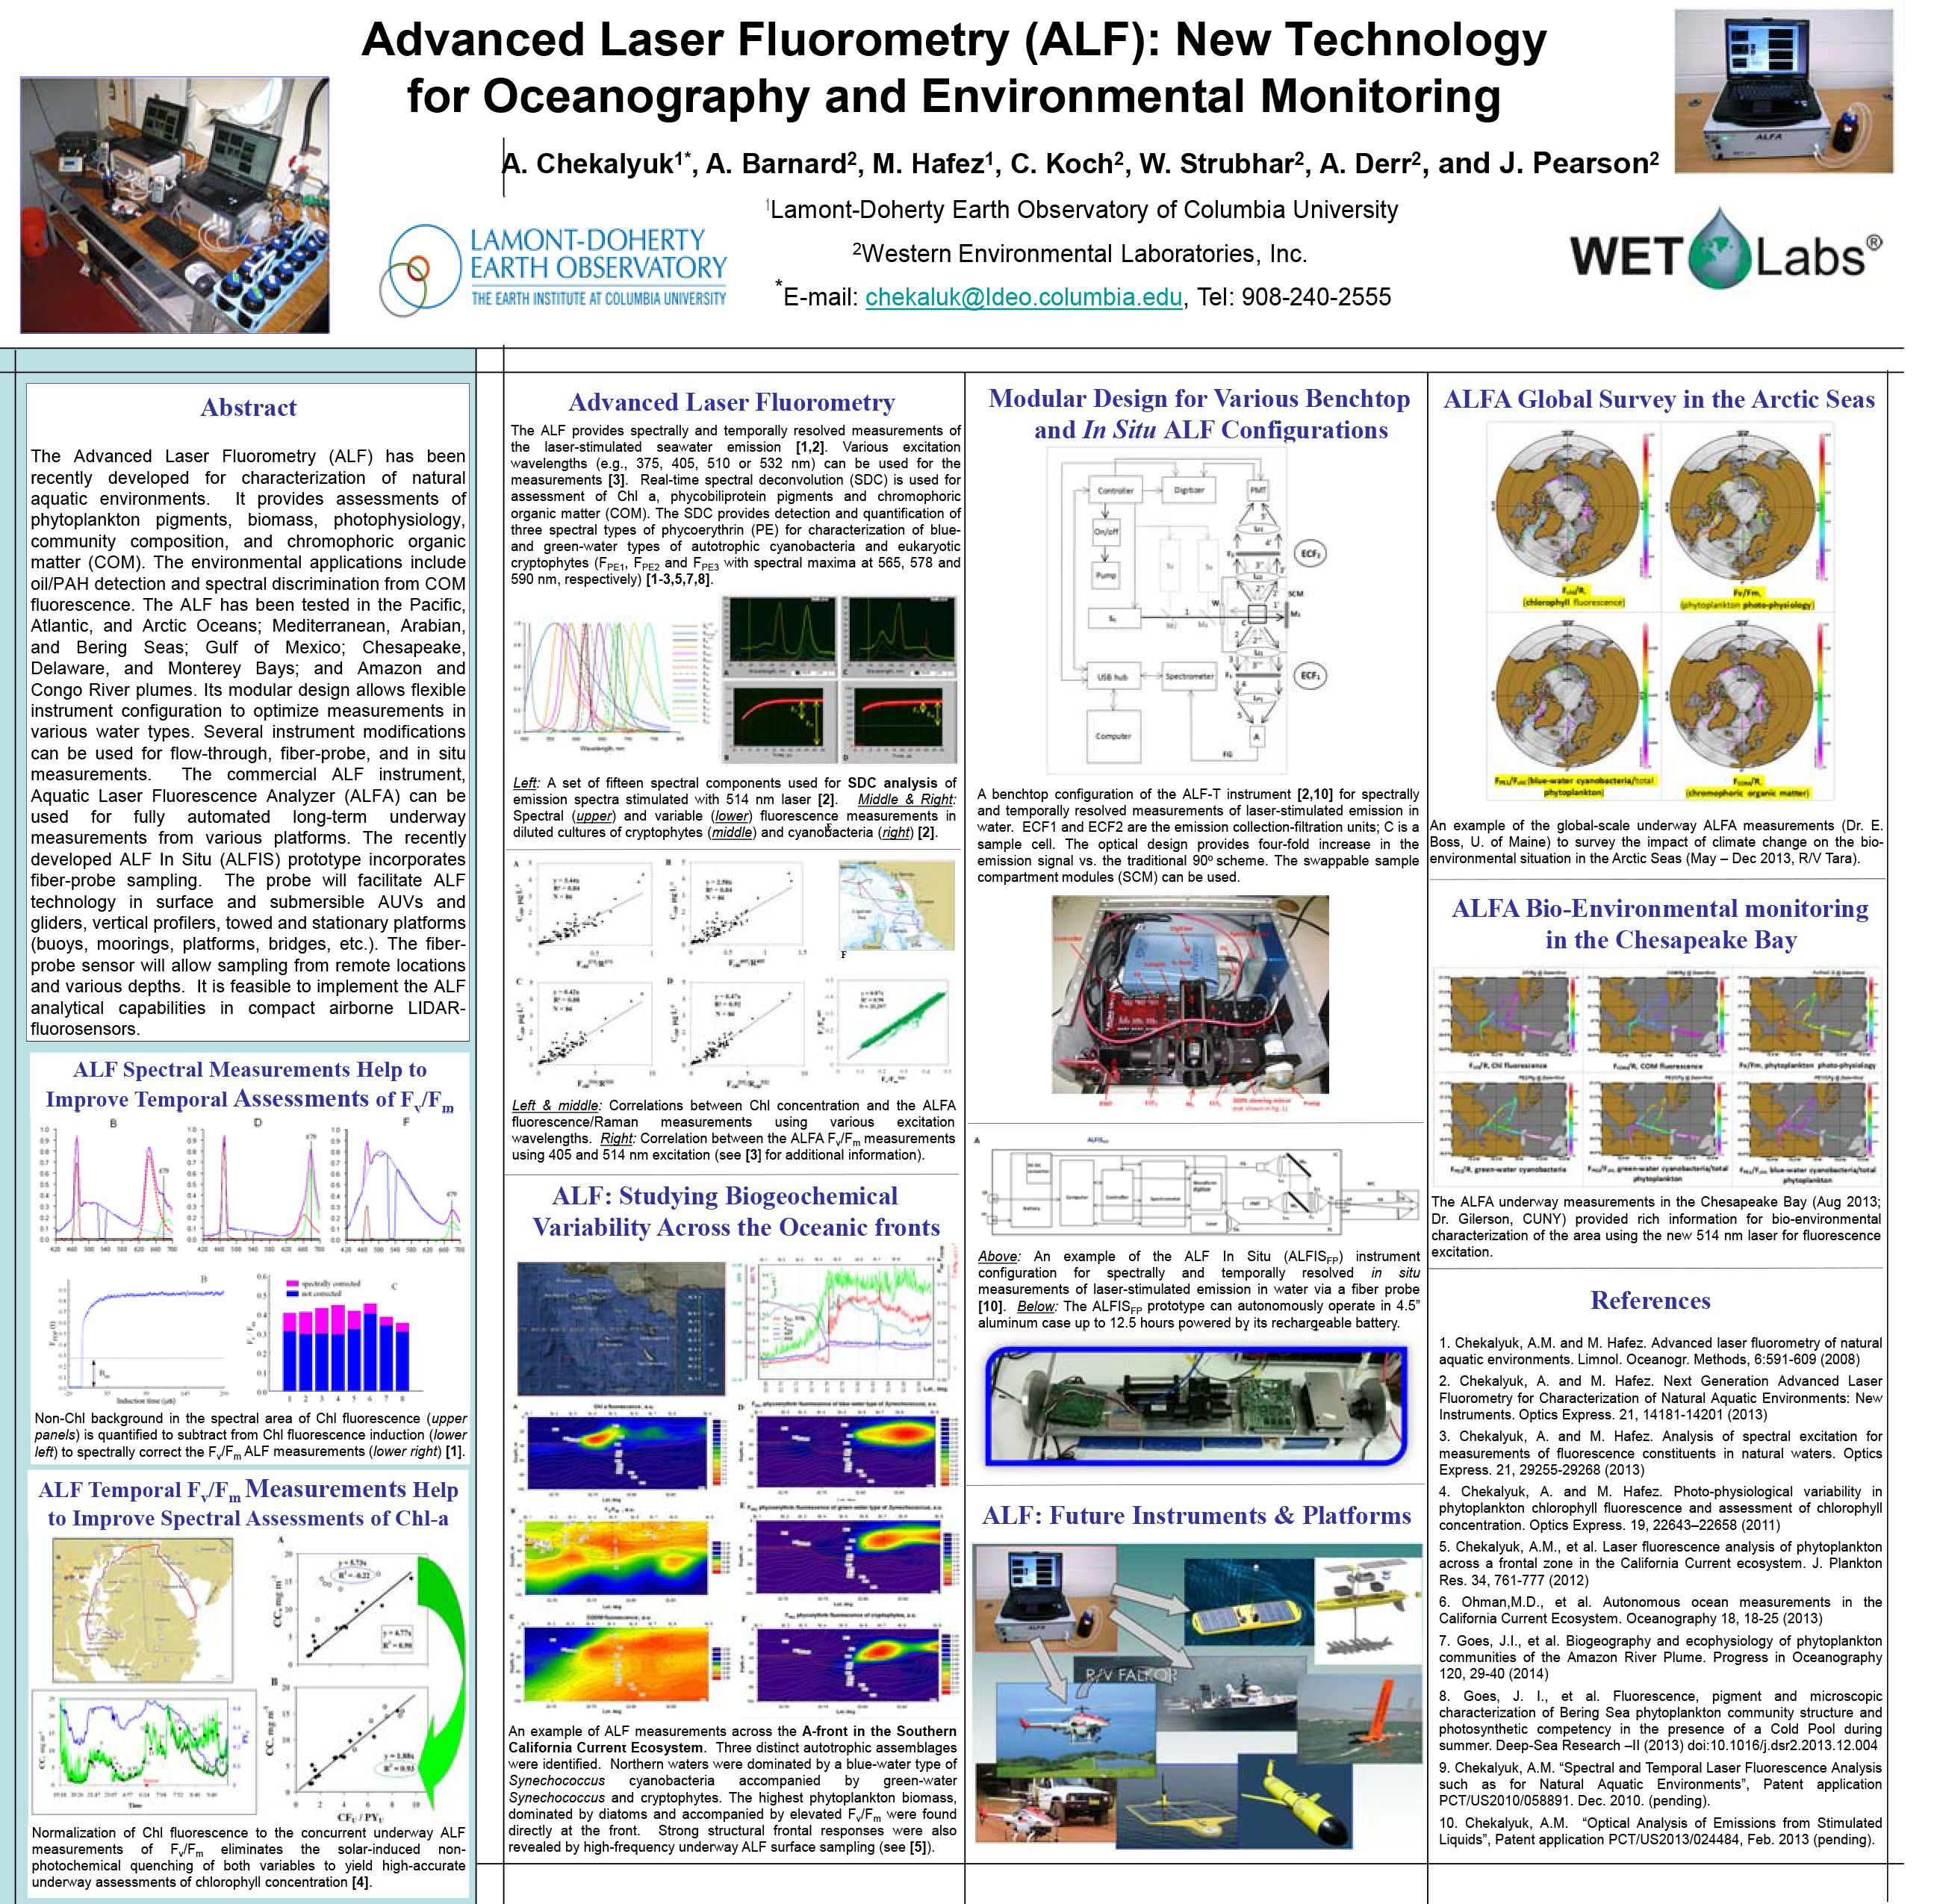 Advanced Laser Fluorometry (ALF): New Technology for Oceanography and Environmental Monitoring